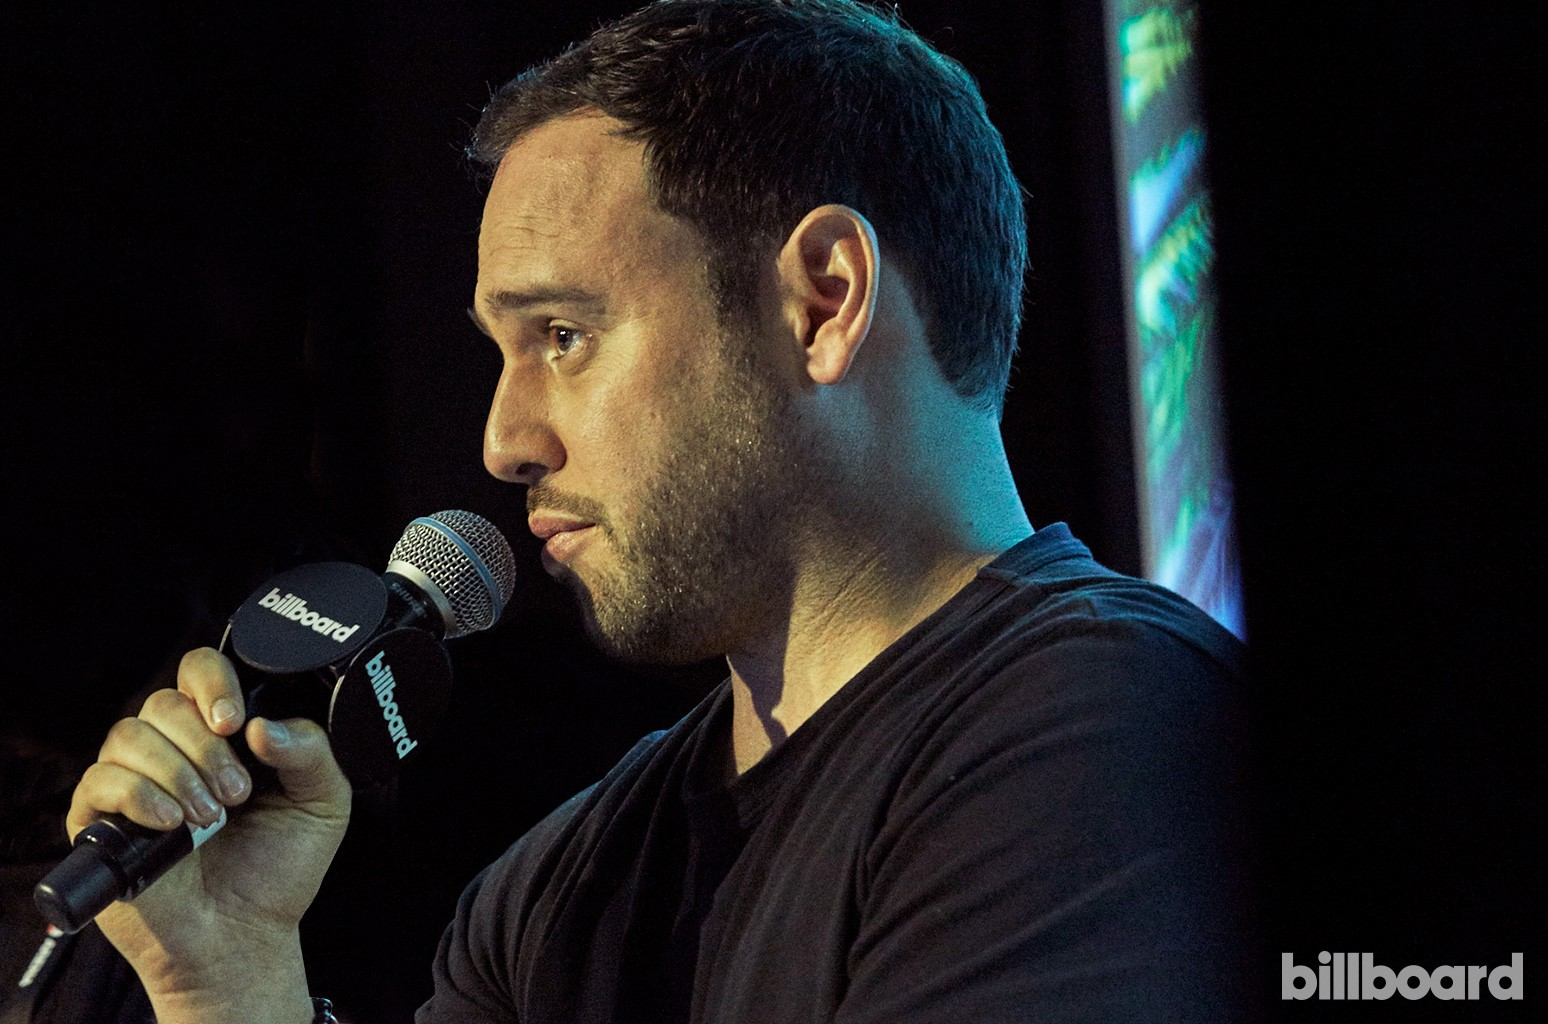 Scooter Braun (Scooter Braun Projects) at the Billboard Touring Conference & Awards on Nov. 9, 2016 in Beverly Hills, Calif.